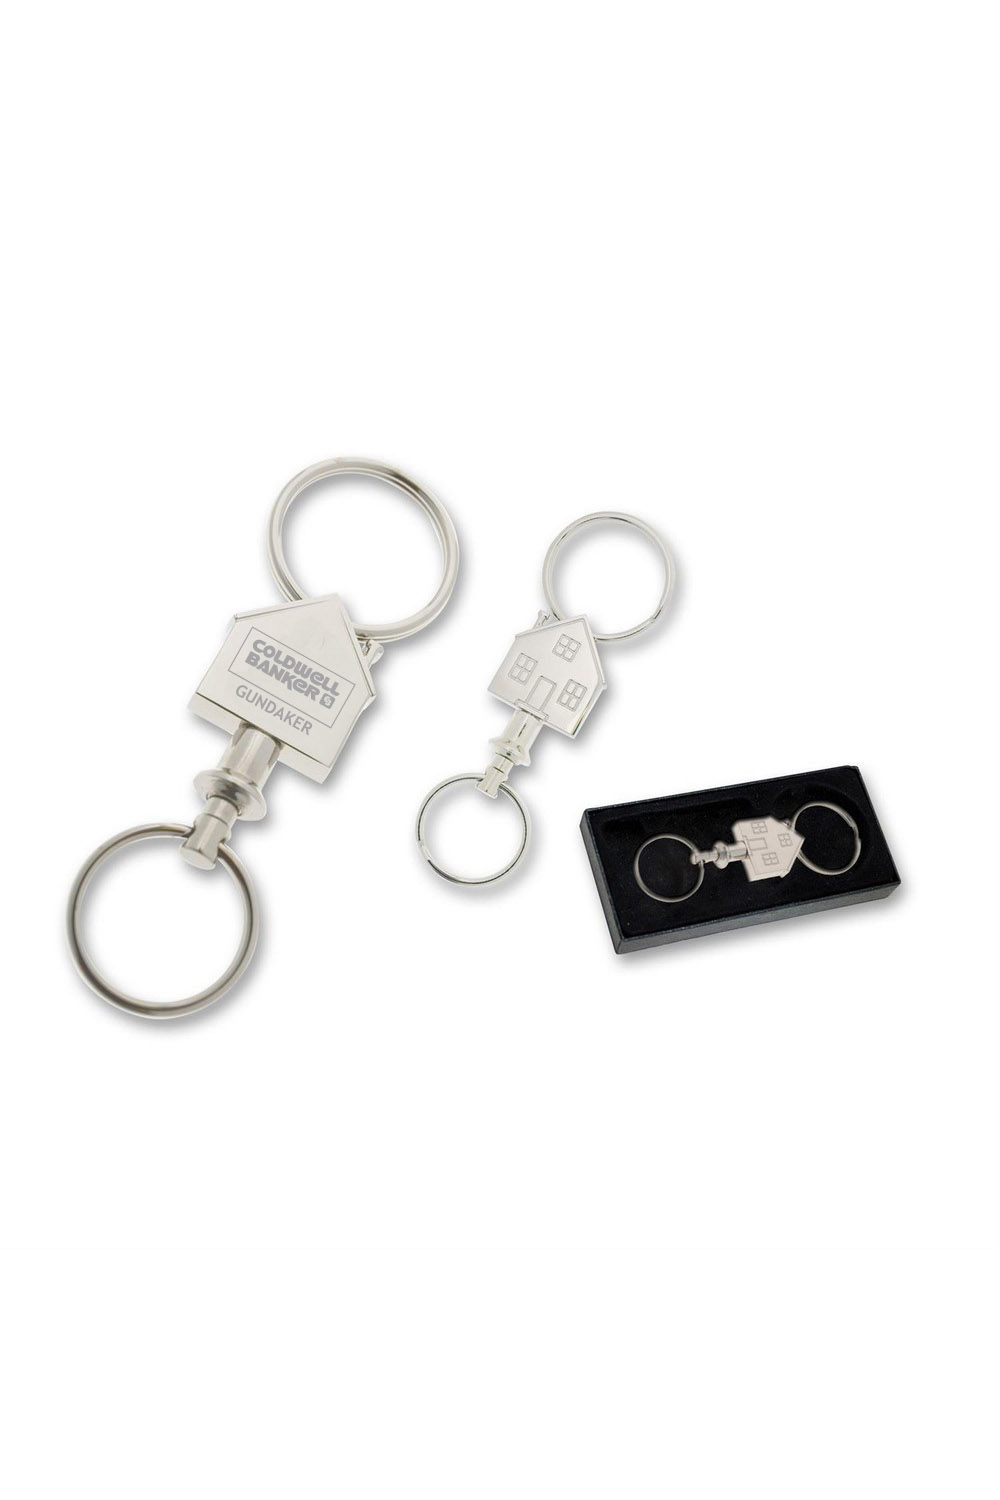 House Valet Keychain  Limited time offer: No minimum required! While  supplies last